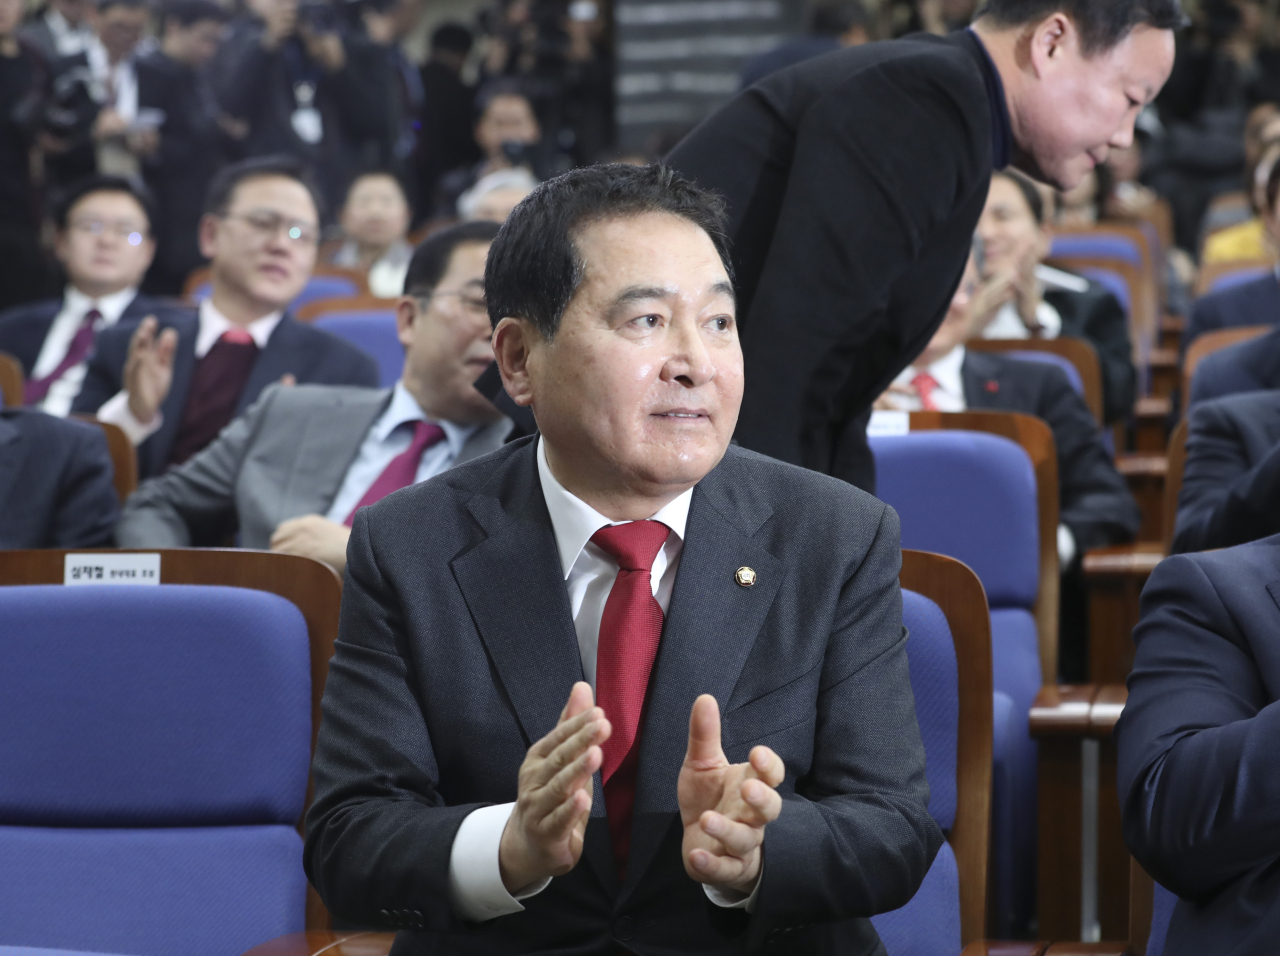 New Floor Leader Shim Jae-cheol of the Liberty Korea Party (Yonhap)